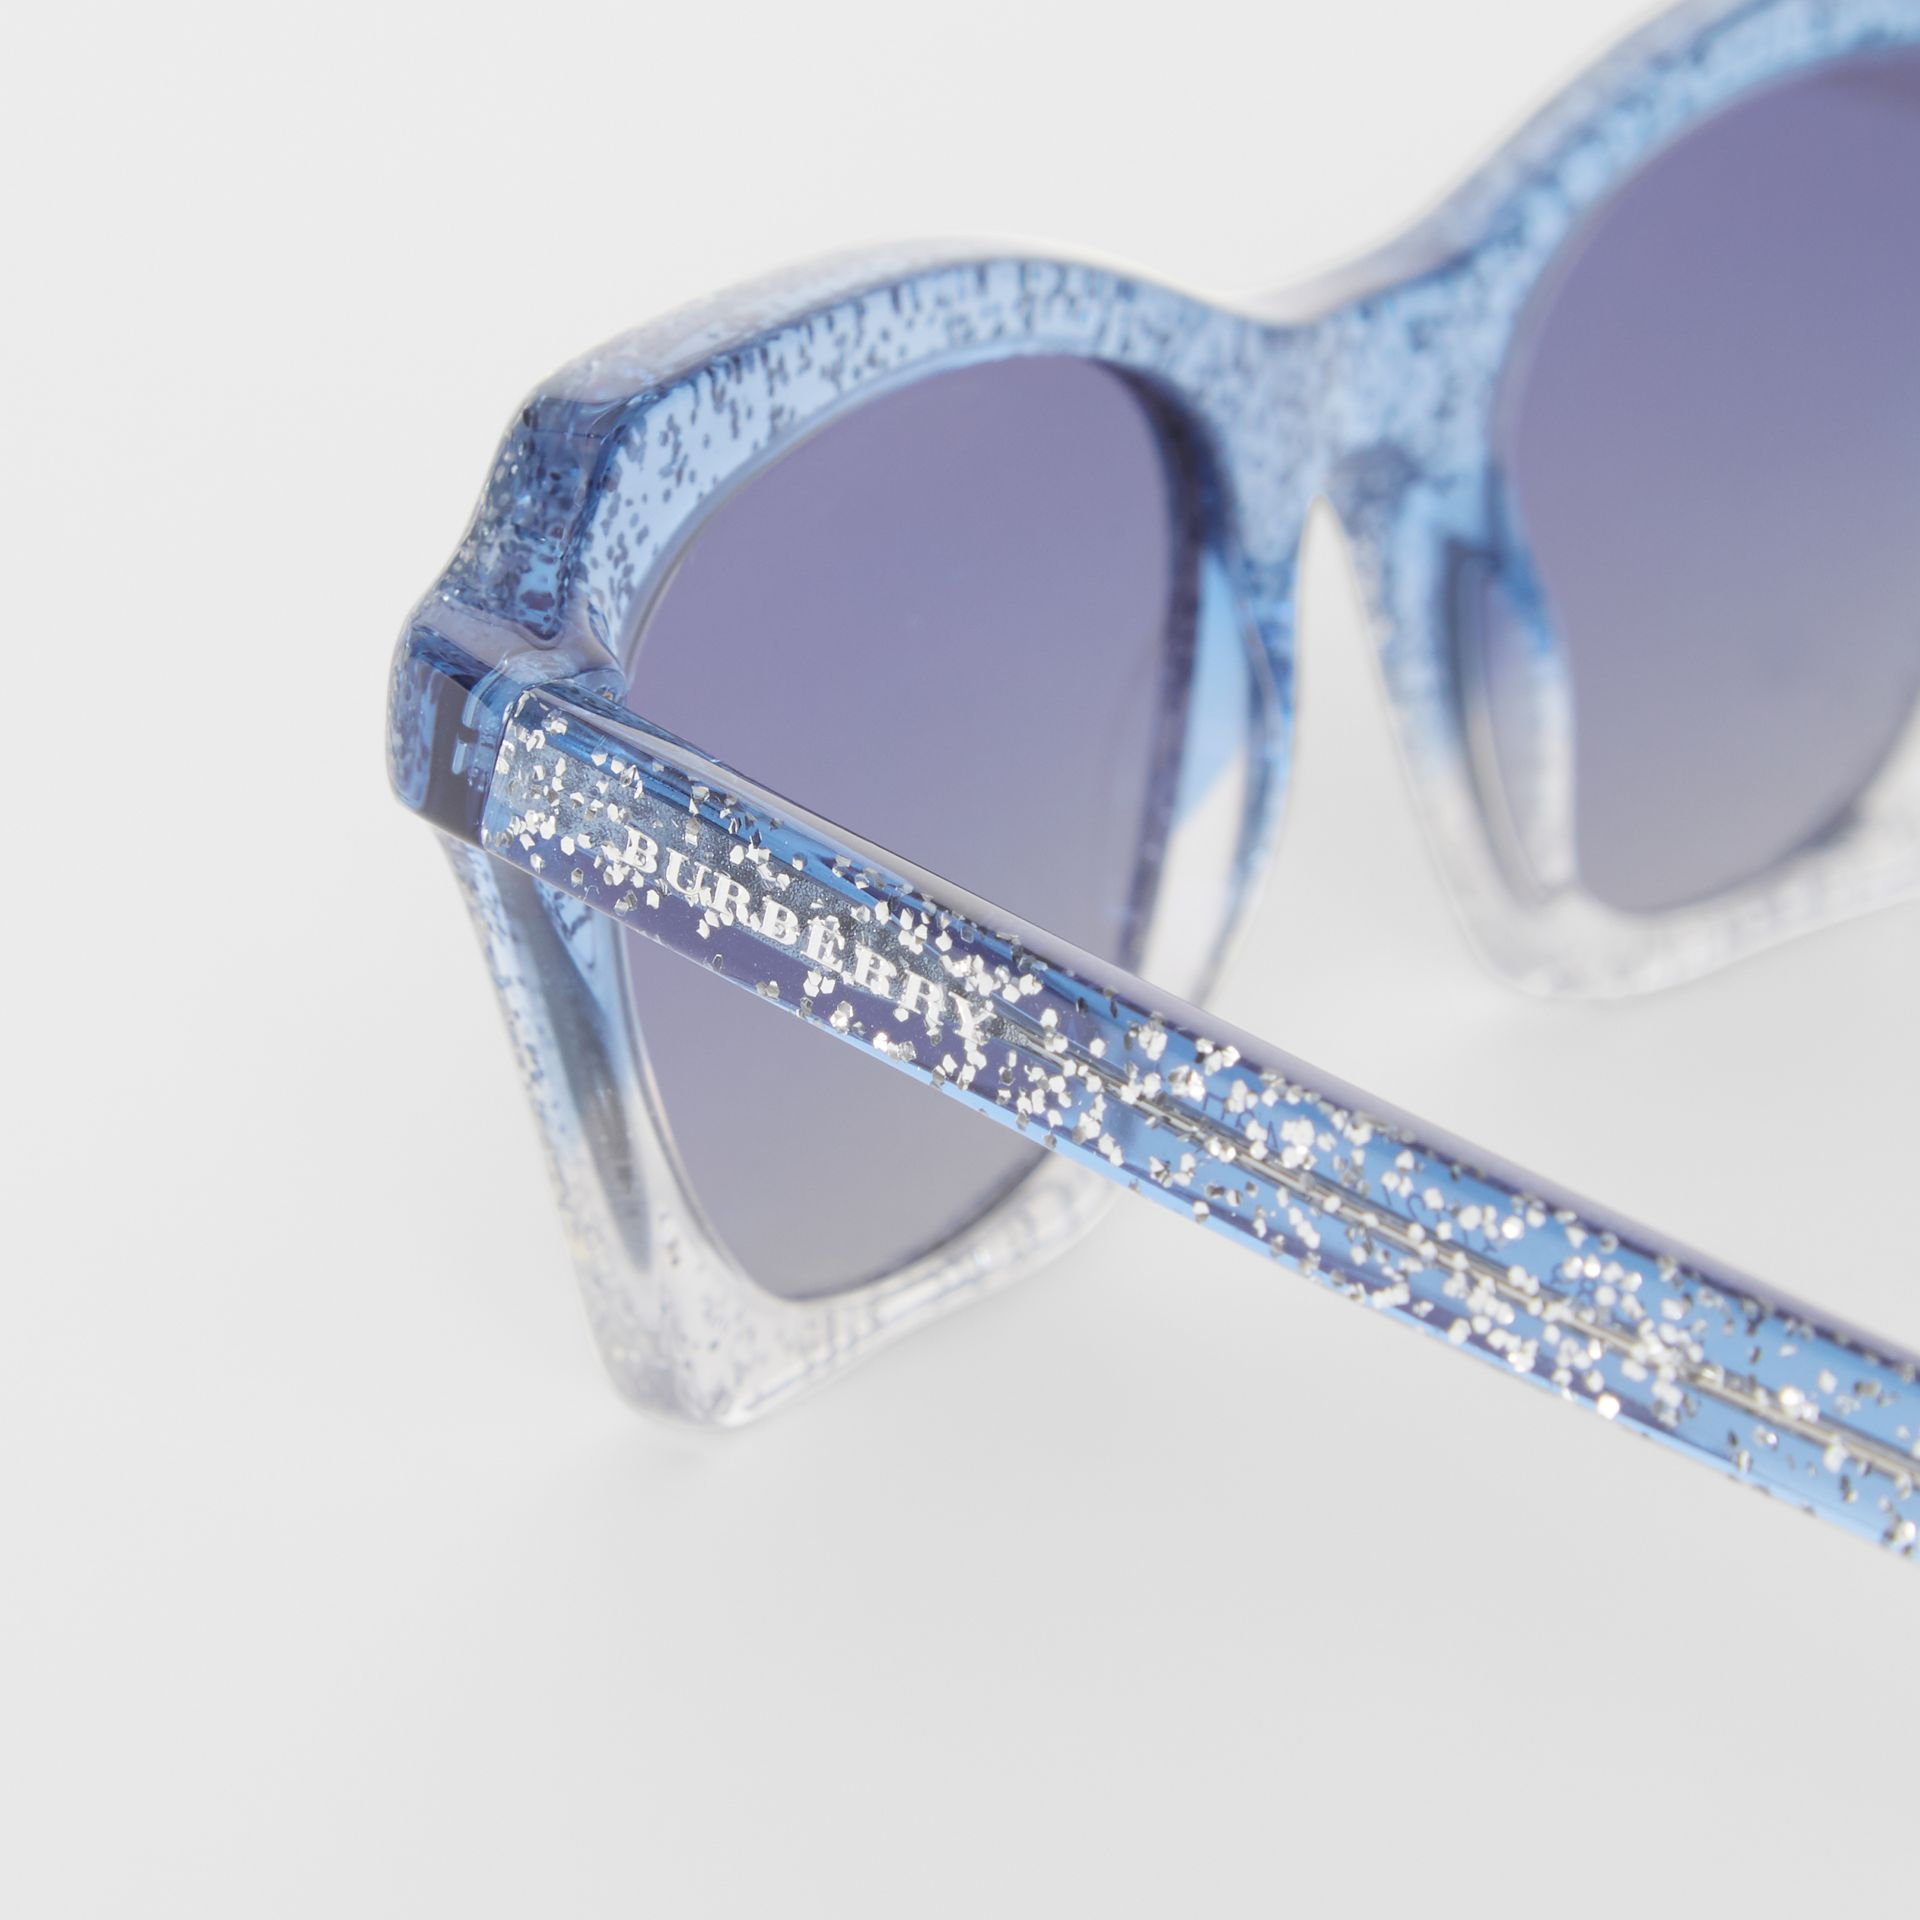 Butterfly Frame Sunglasses in Blue - Women | Burberry United Kingdom - gallery image 1